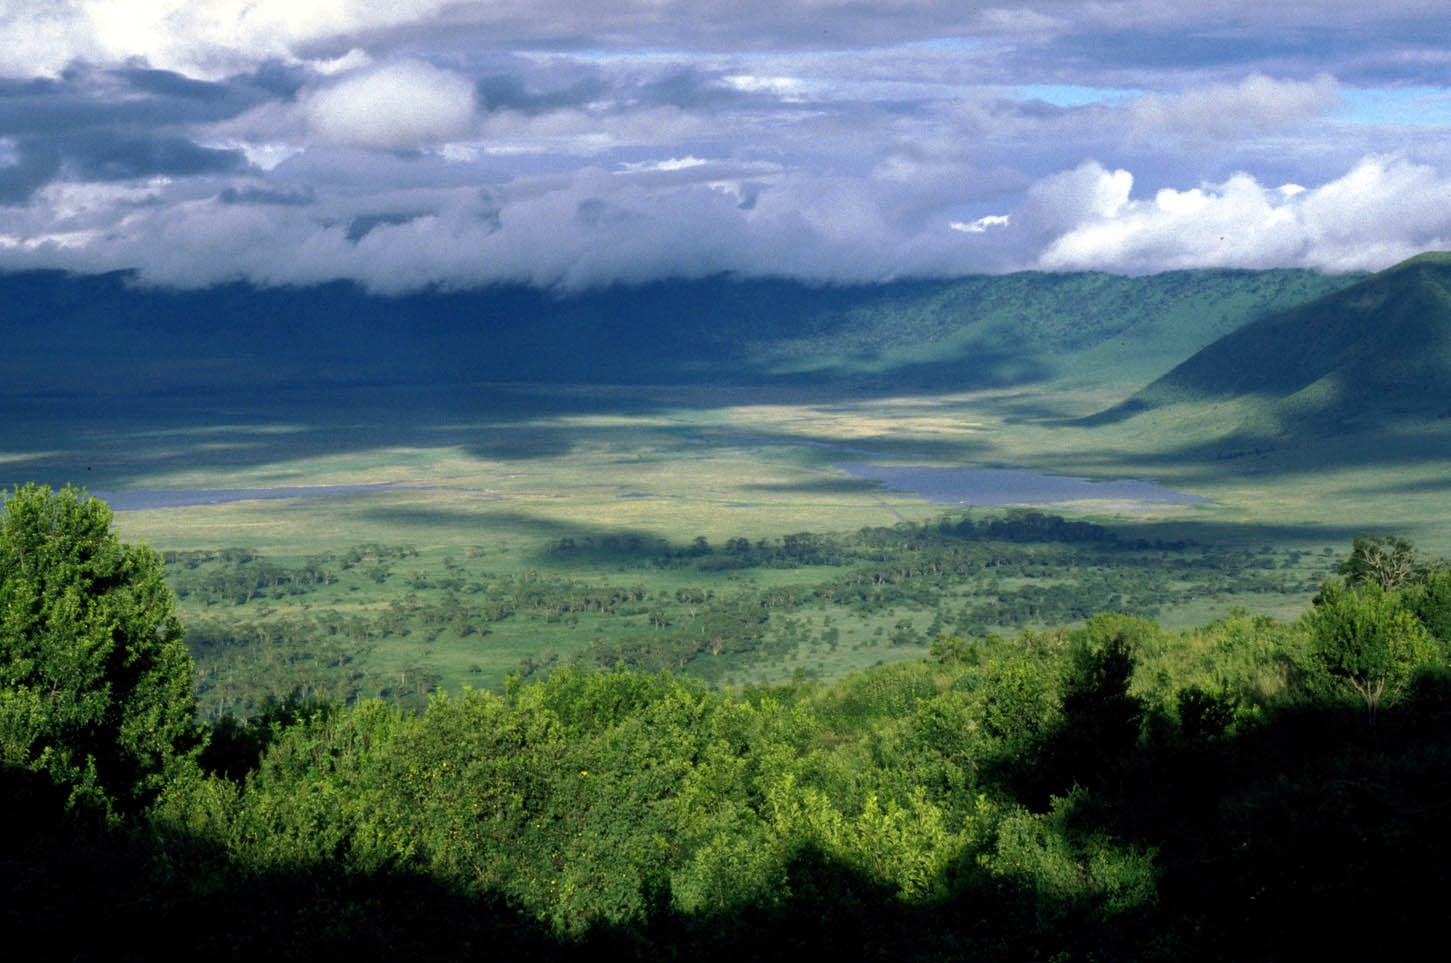 The magnificent Ngorongoro Crater